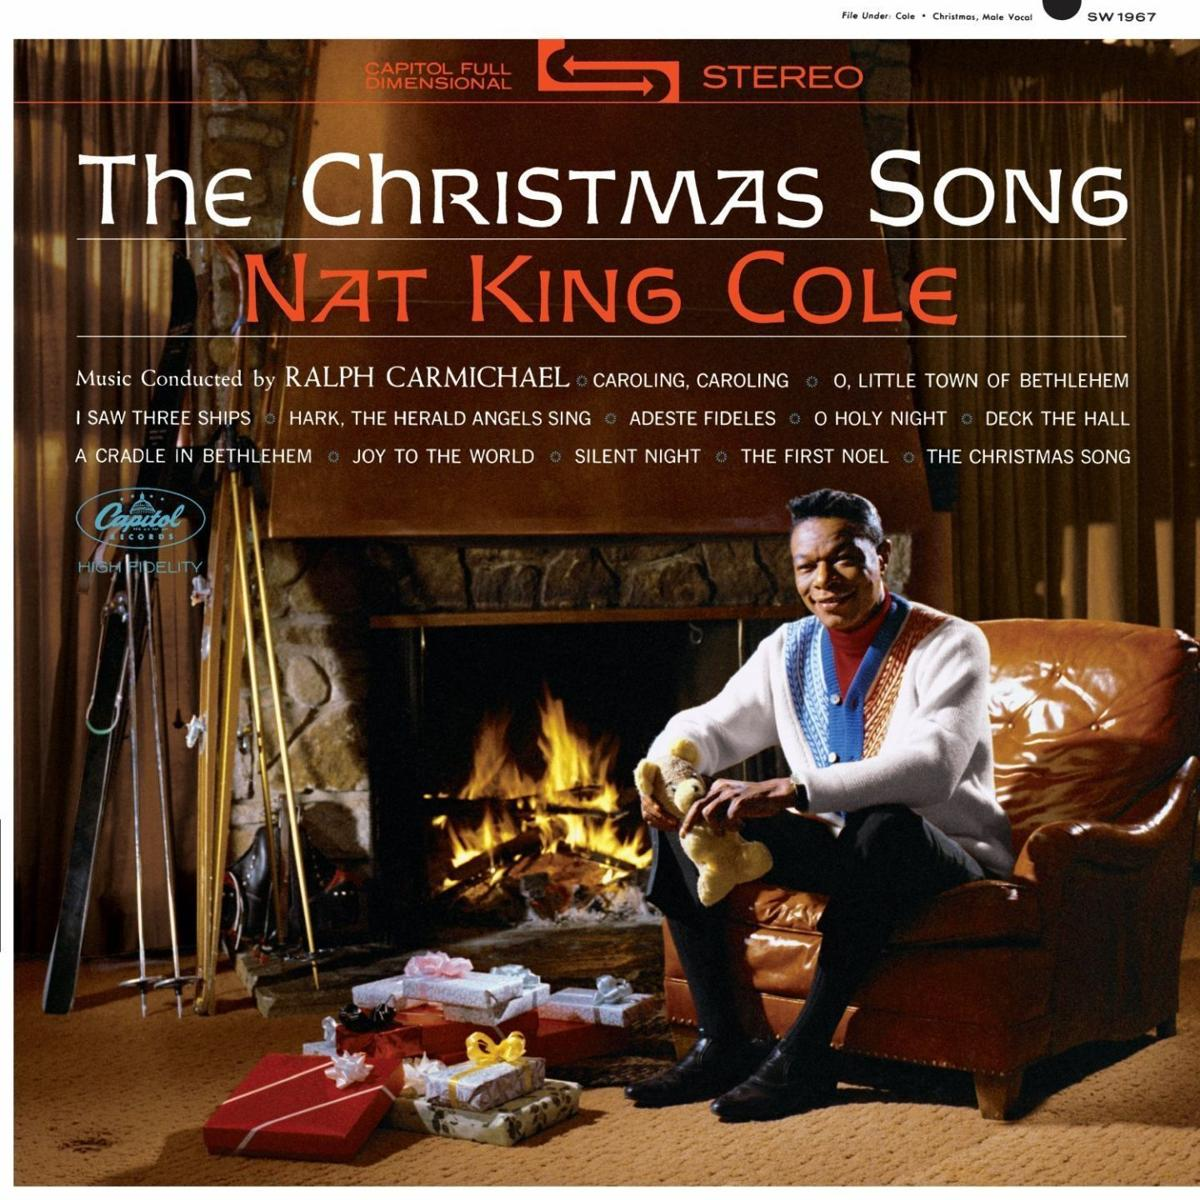 20 great secular christmas songs music herald reviewcom